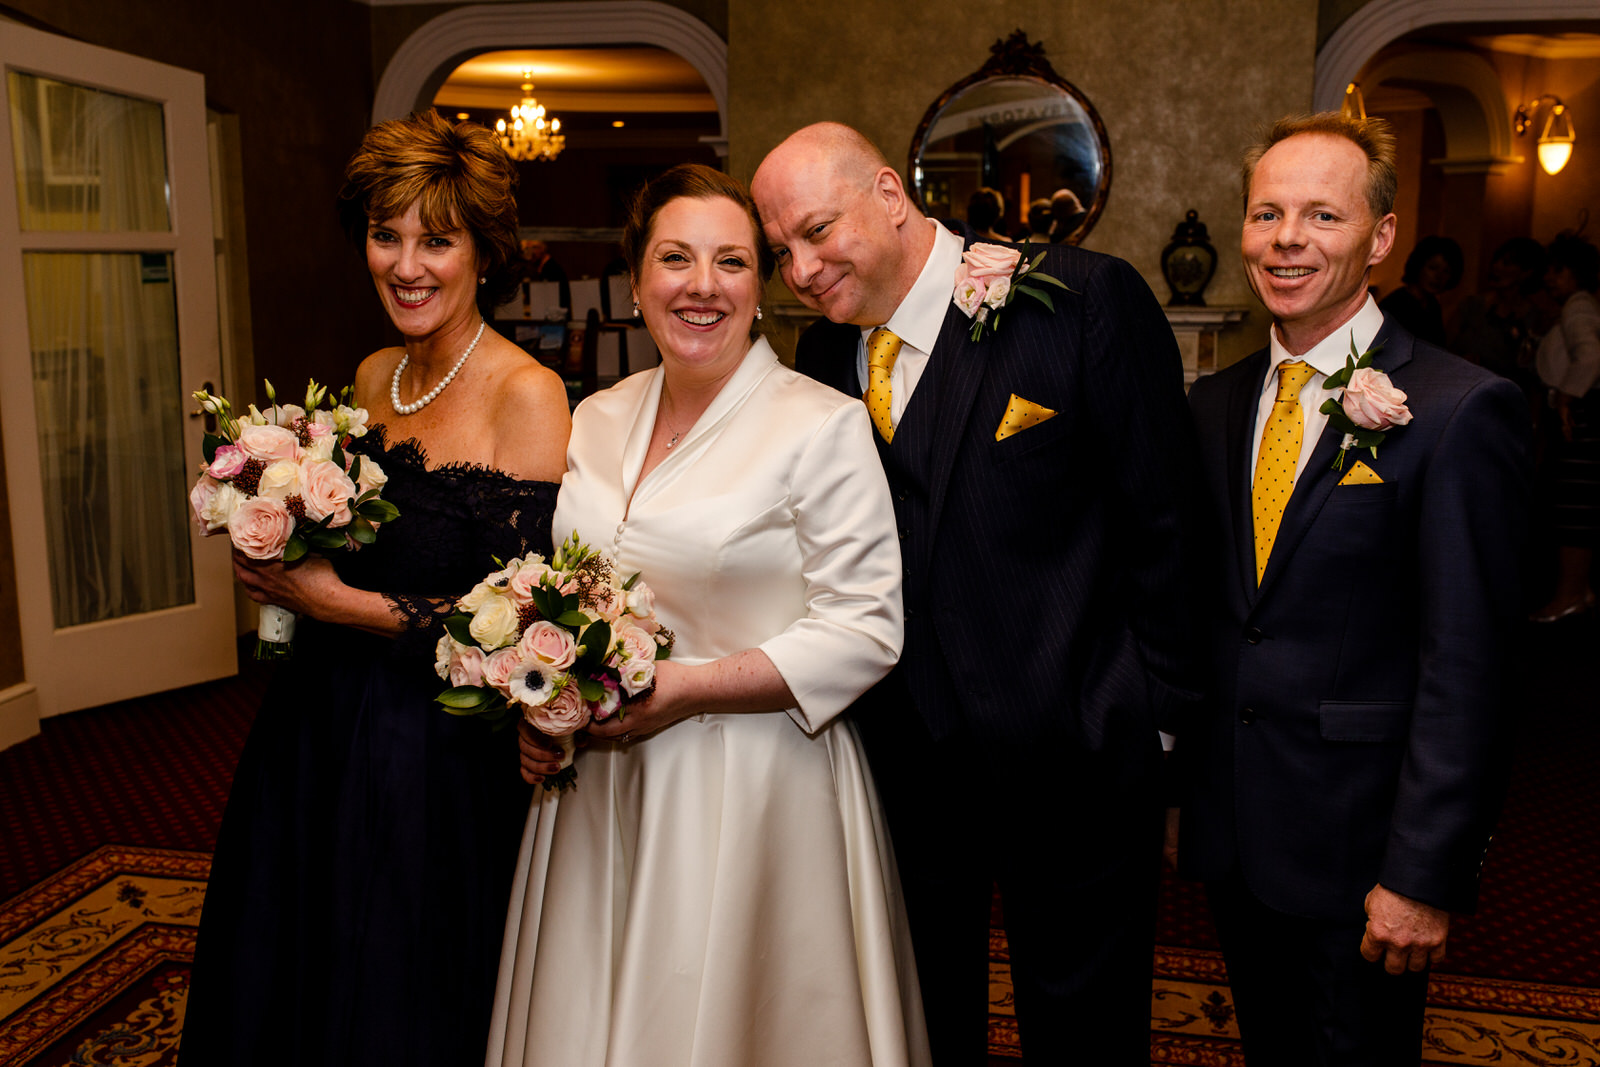 Roger-kenny-wedding-photographer-wicklow-glenview_065.jpg